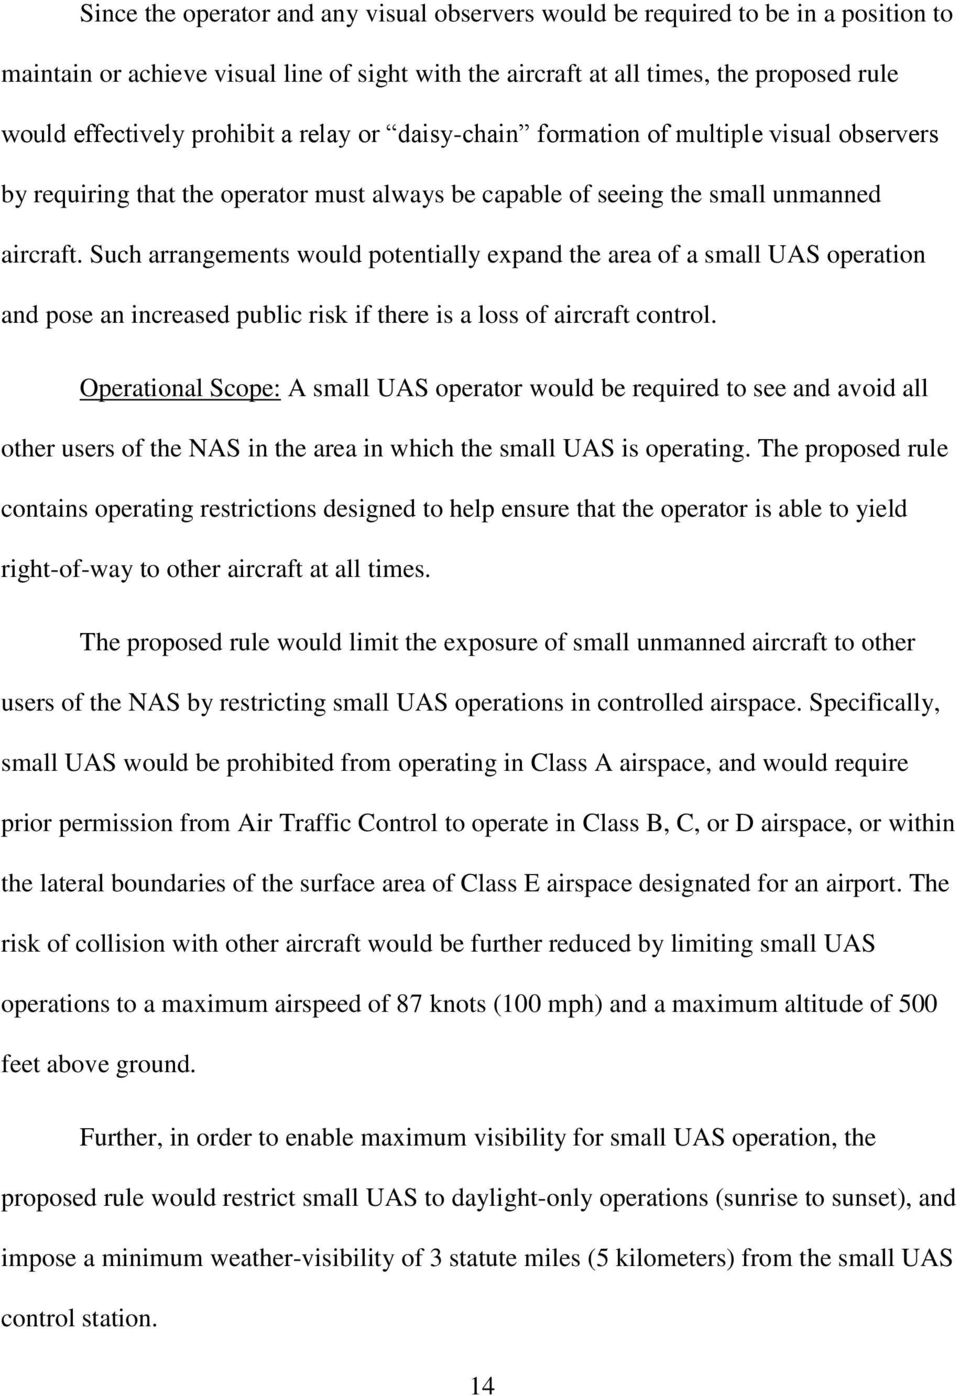 Such arrangements would potentially expand the area of a small UAS operation and pose an increased public risk if there is a loss of aircraft control.